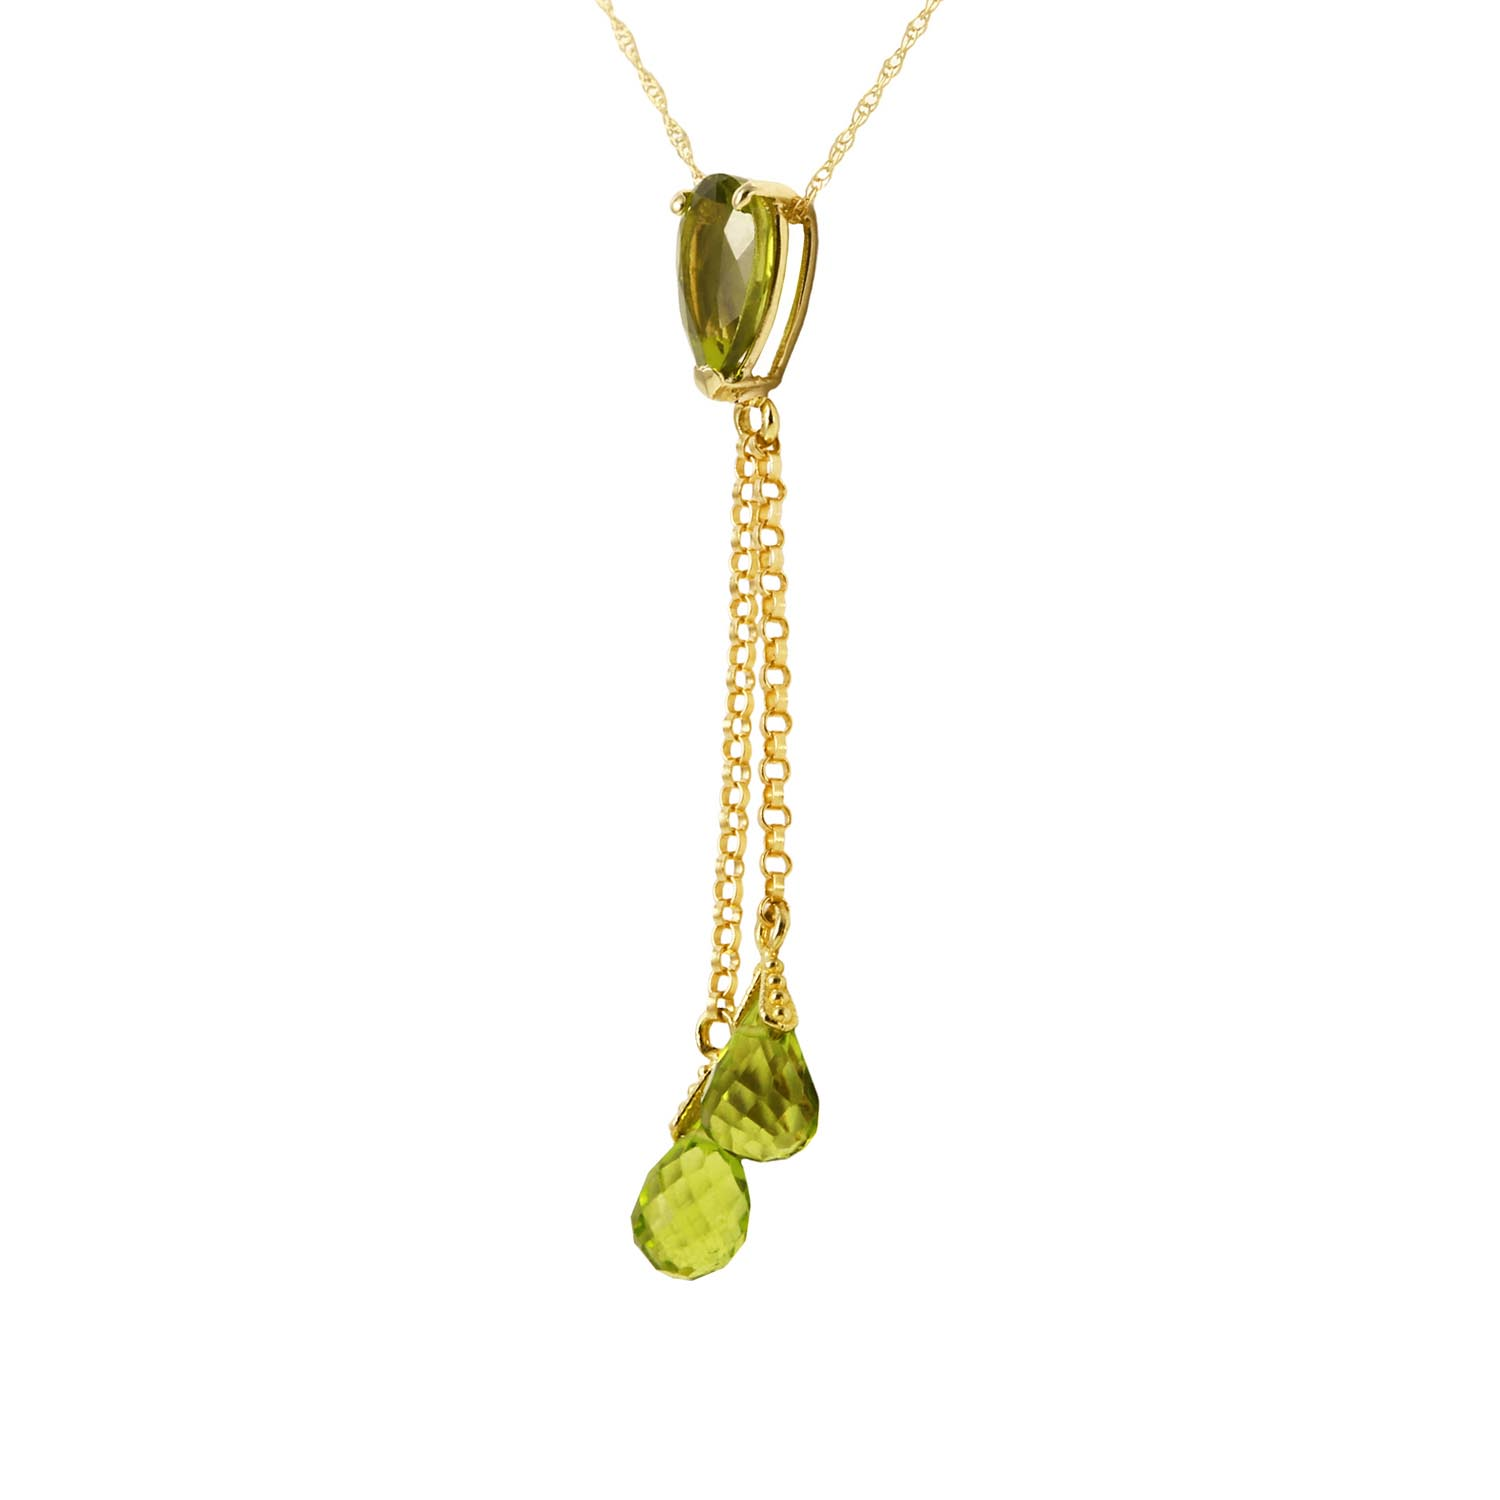 Peridot Droplet Pendant Necklace 3.75ctw in 9ct Gold